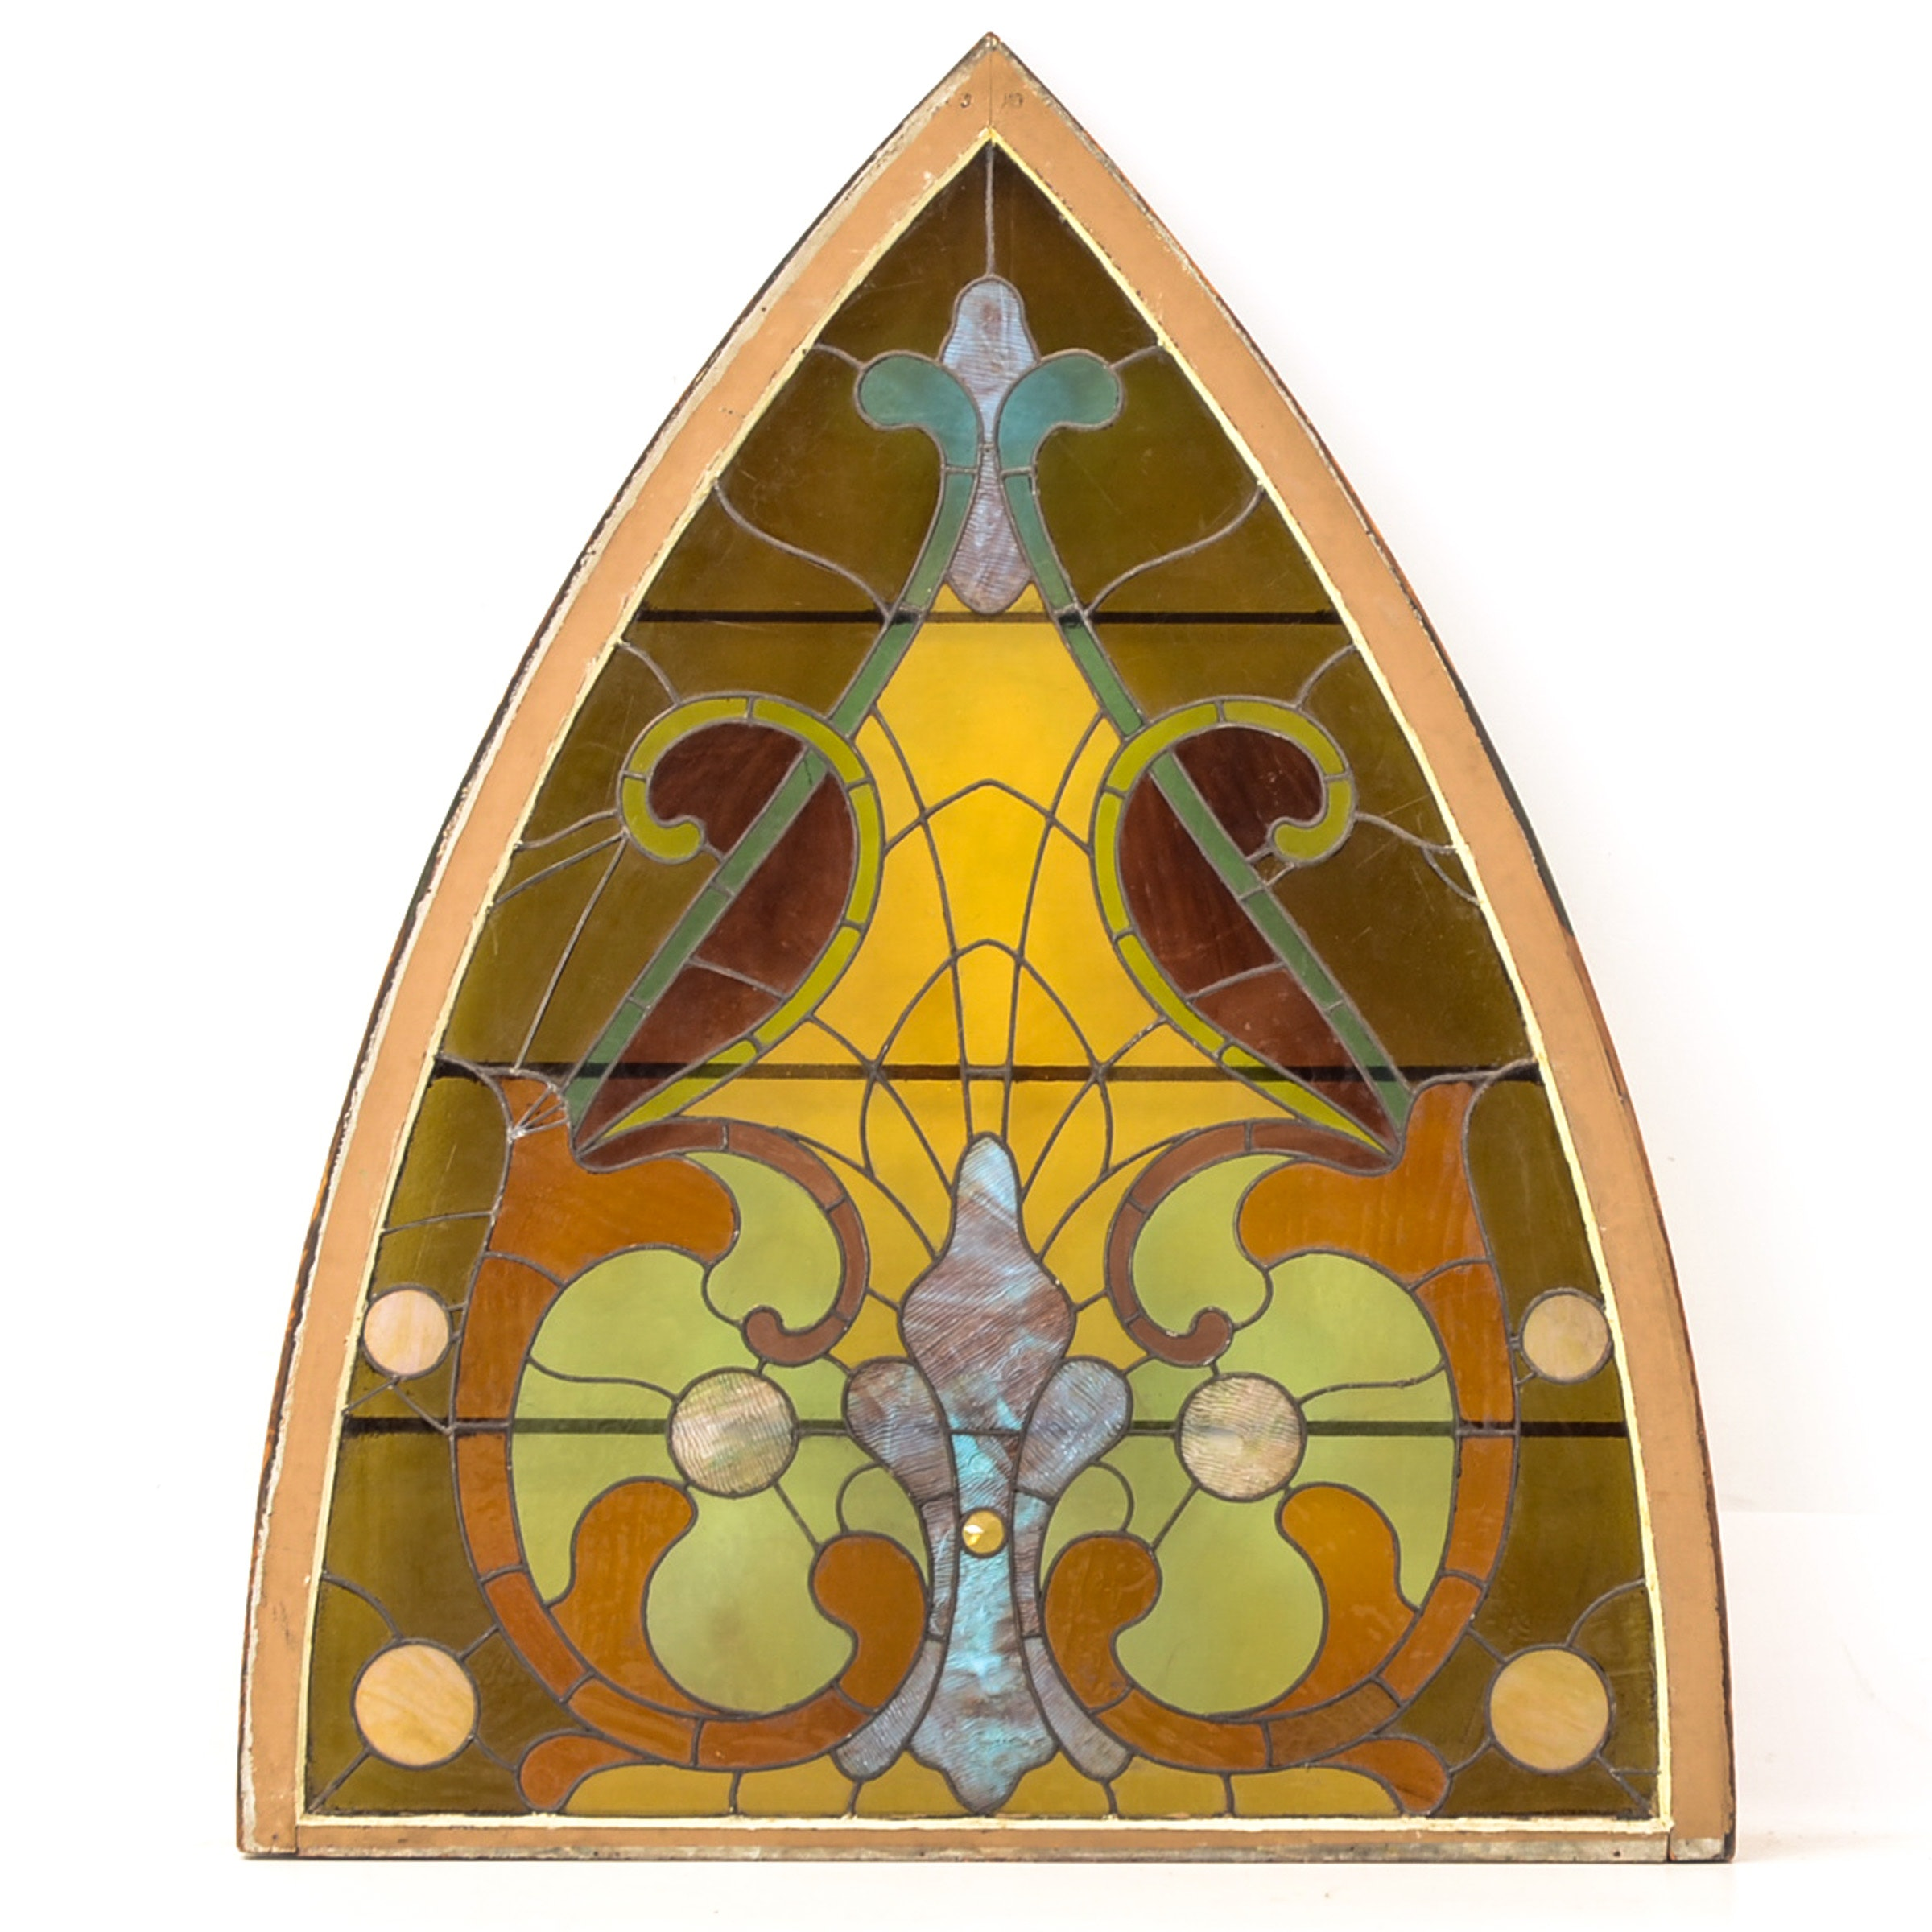 Pointed-Arch Stained Glass Window